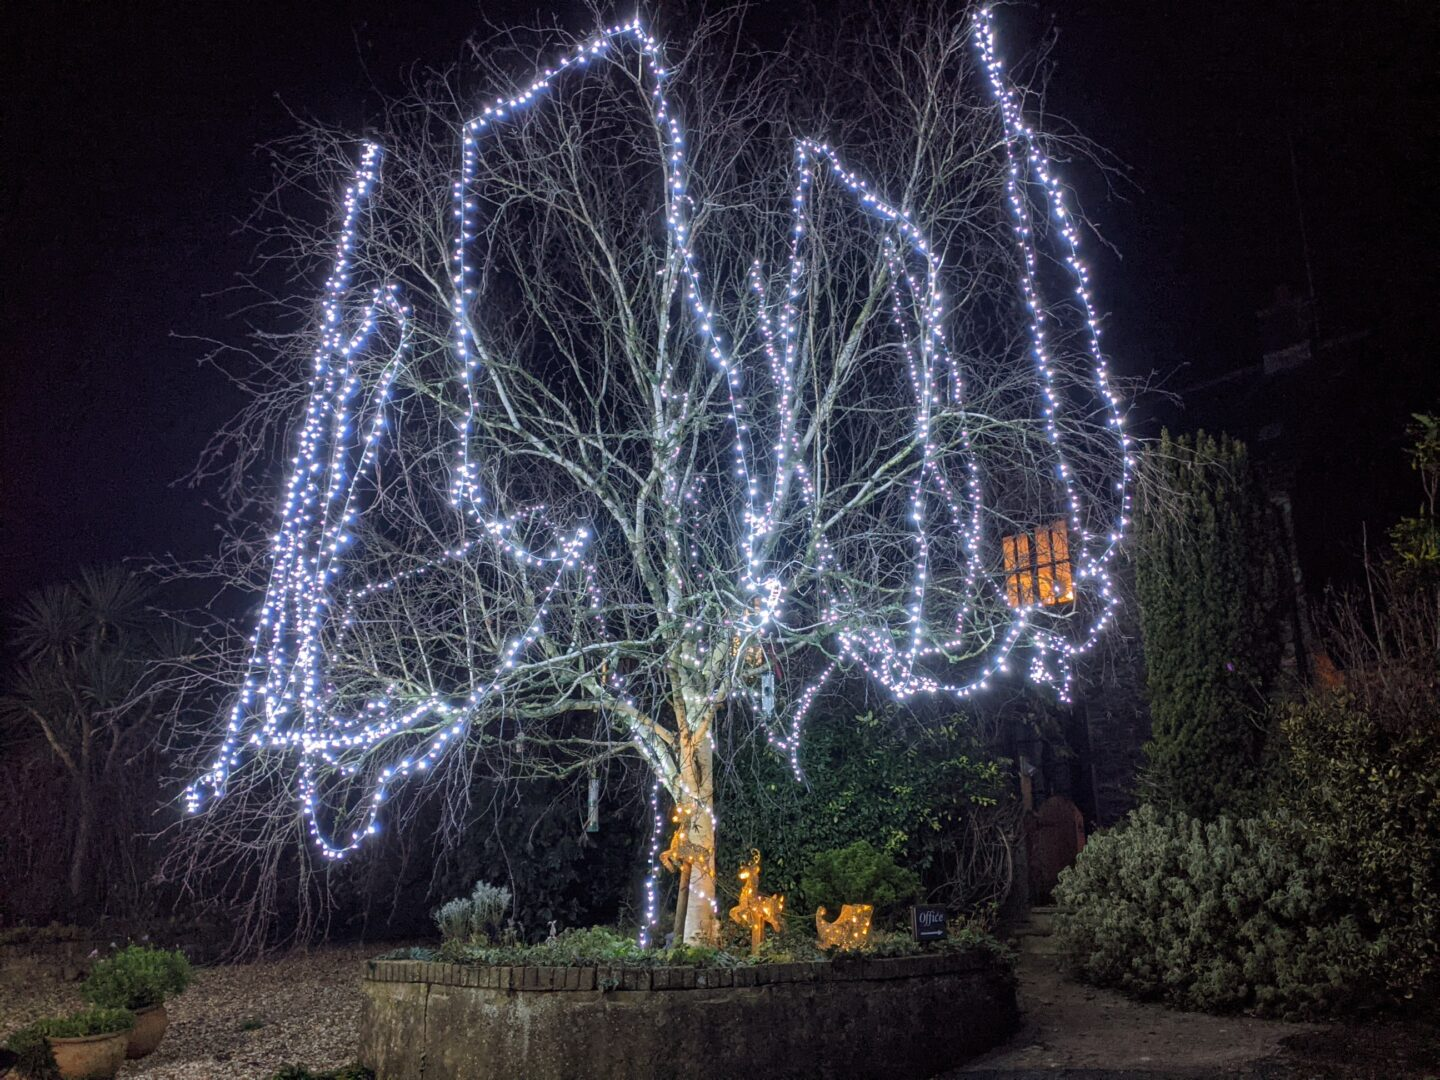 places to stay near kingswear, brixham christmas lights